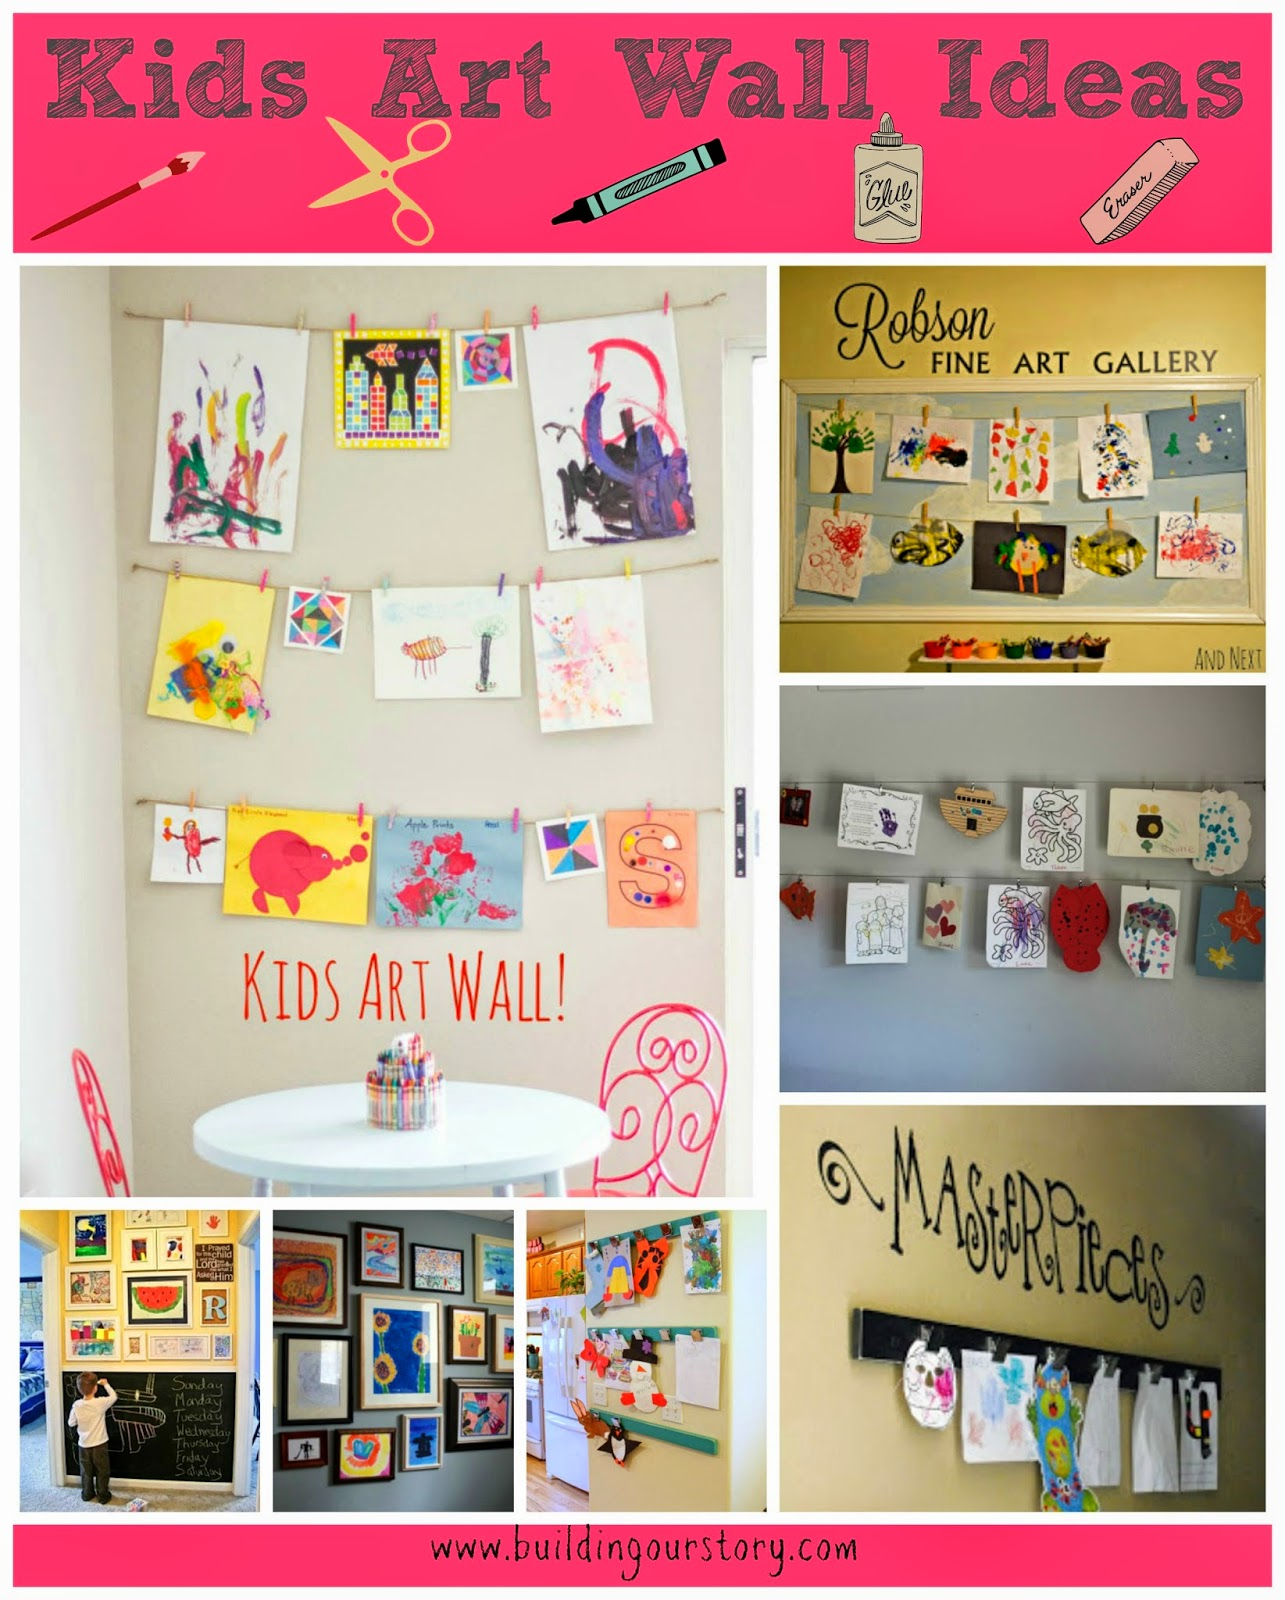 Kids art wall ideas building our story for Kids wall art